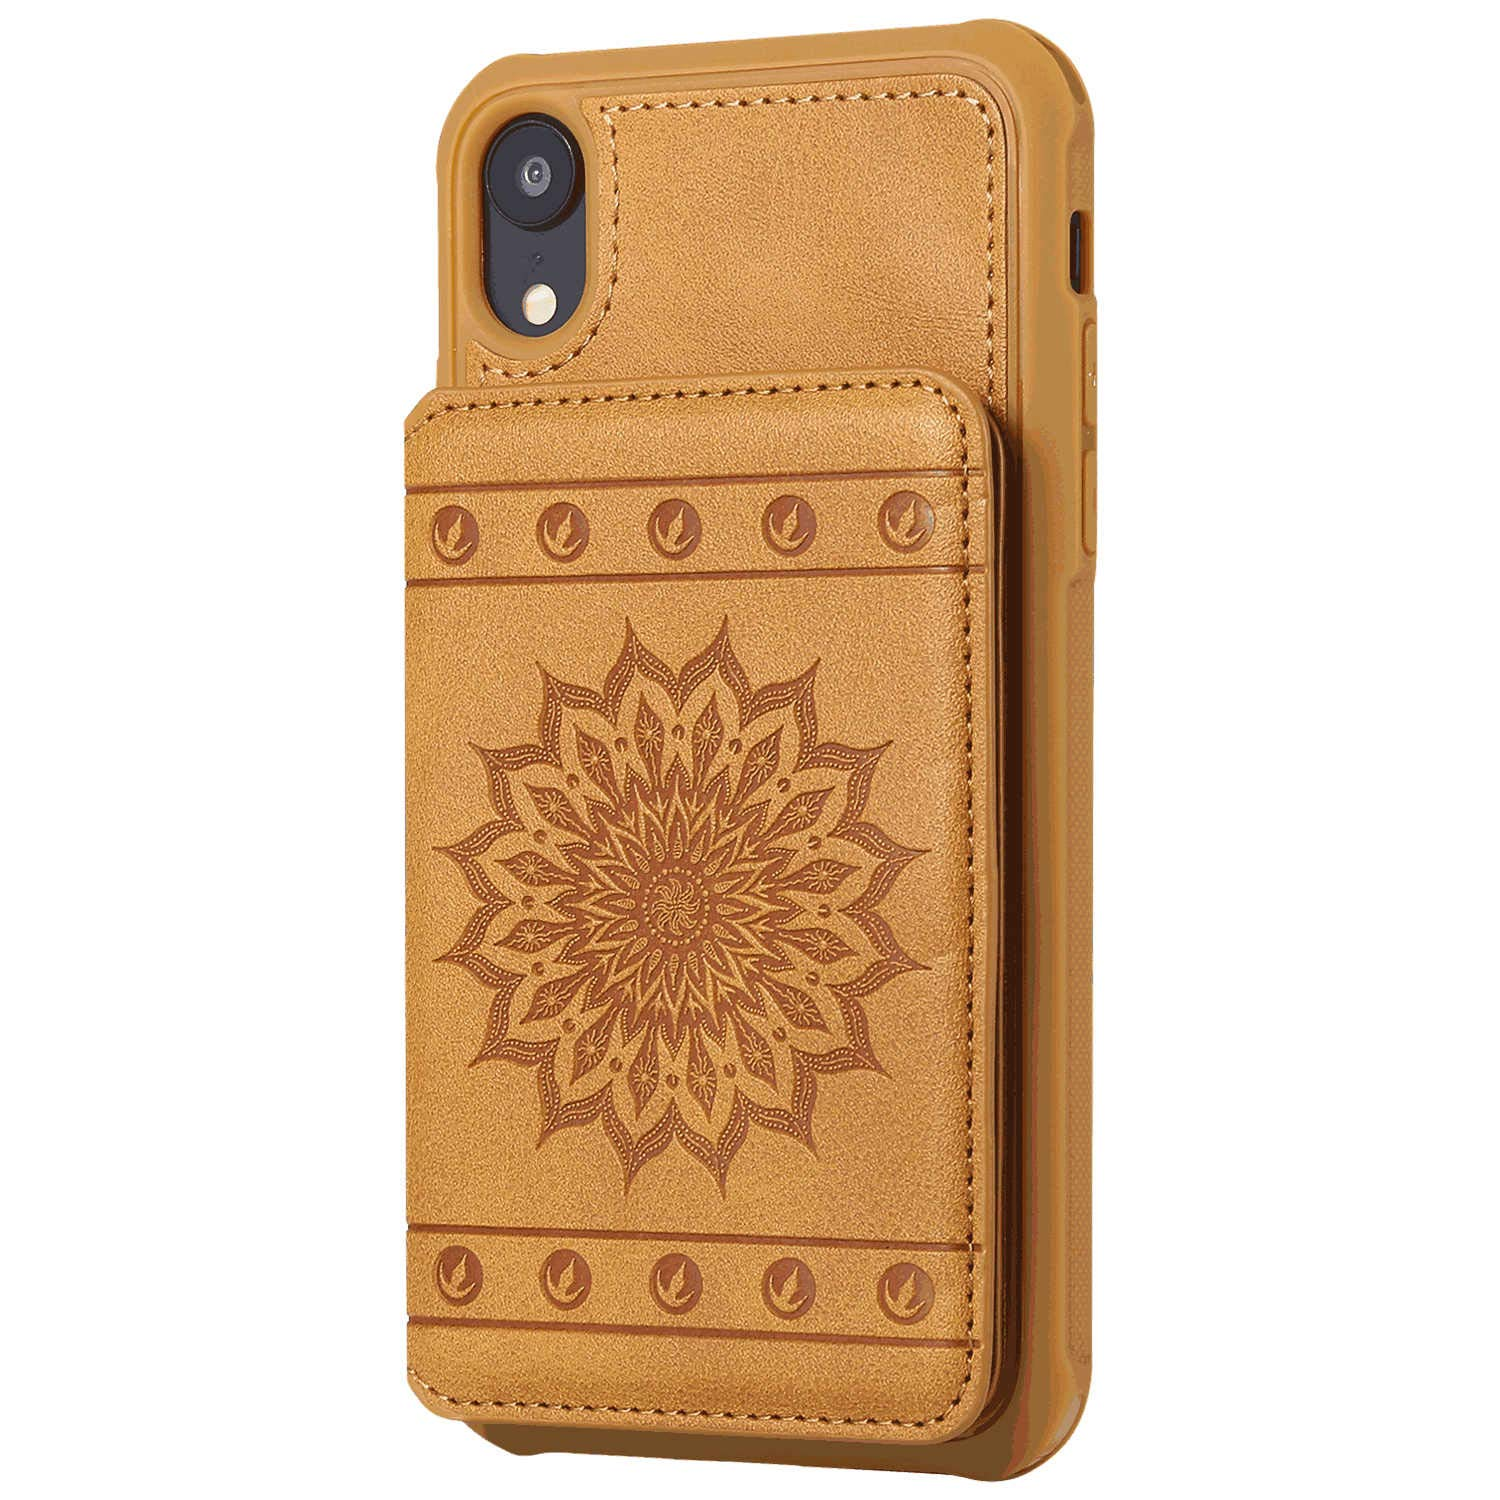 Cover for Leather Extra-Shockproof Business Card Holders Wallet case Kickstand Flip Cover iPhone XR Flip Case